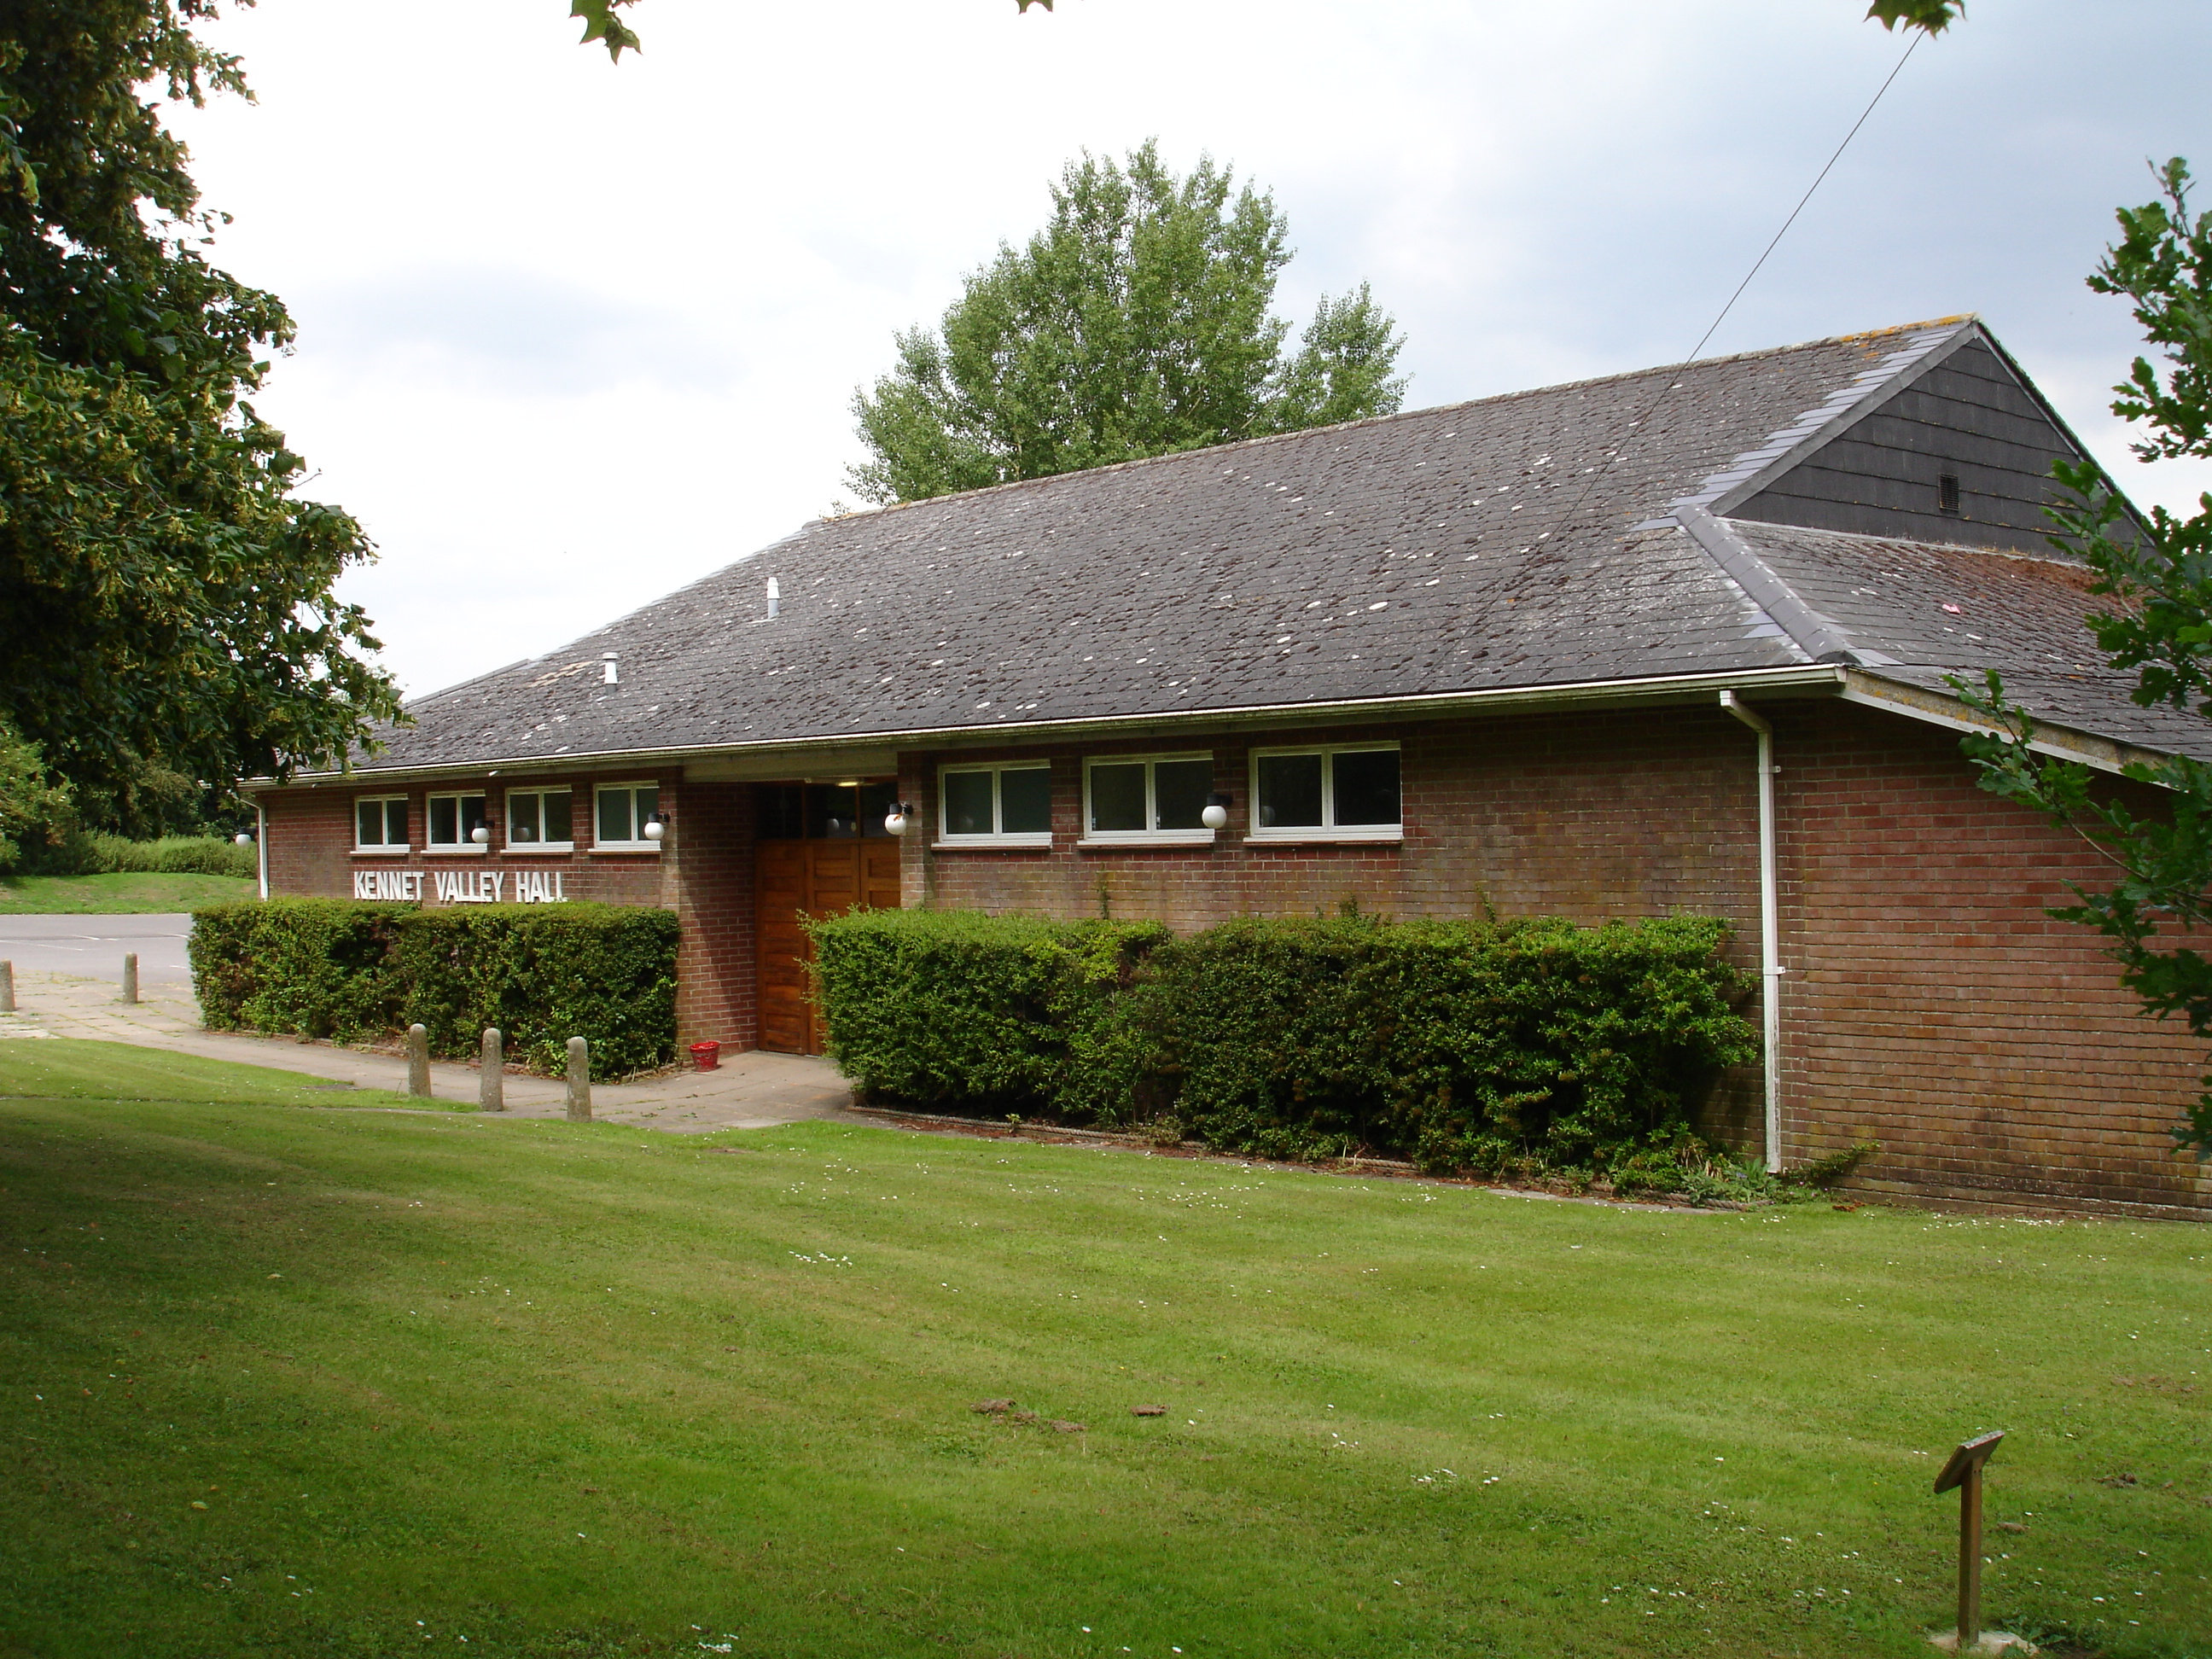 Kennet Valley Village Hall (Lockeridge)